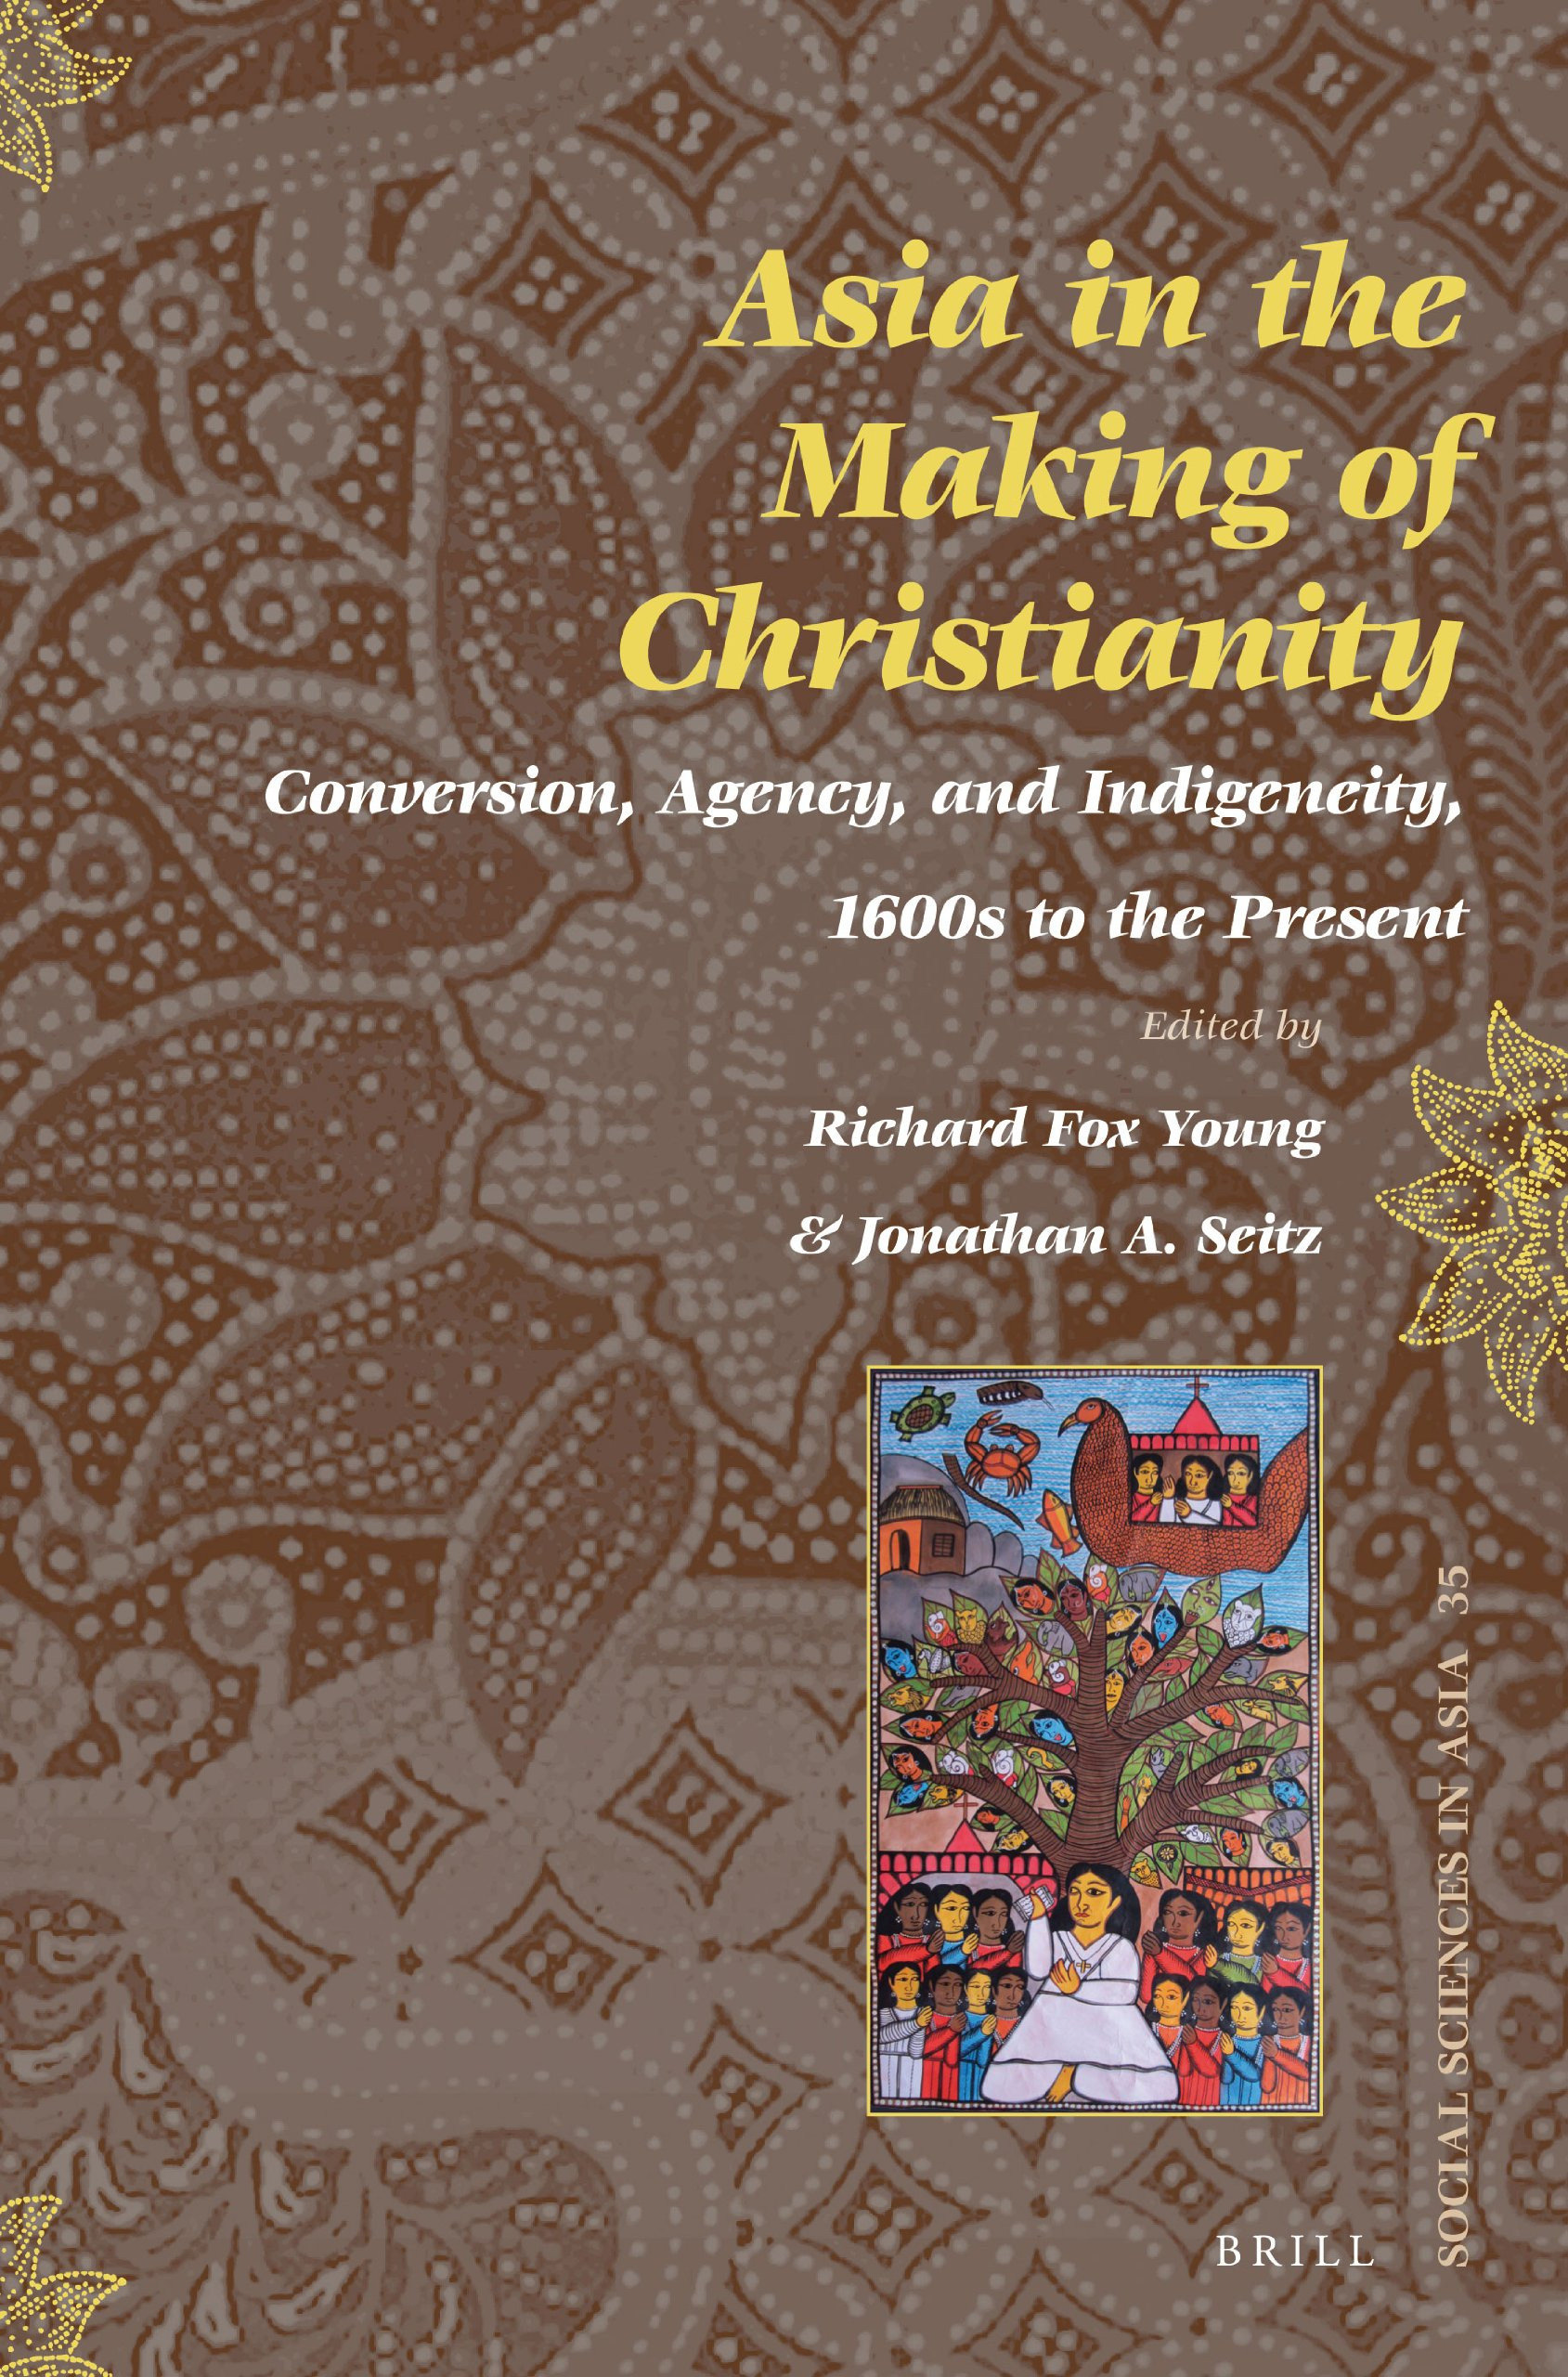 Download Asia in the Making of Christianity: Conversion, Agency, and Indigeneity, 1600s to the Present (Social Sciences in Asia) pdf epub